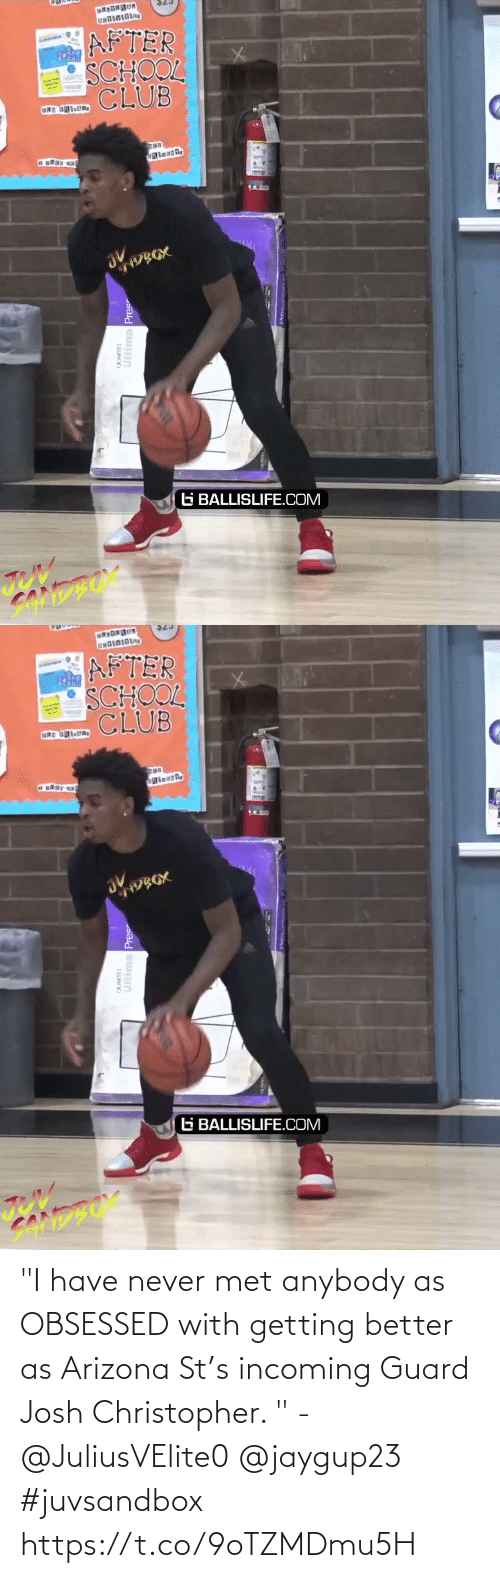 """Getting Better: """"I have never met anybody as OBSESSED with getting better as Arizona St's incoming Guard Josh Christopher. """" - @JuliusVElite0 @jaygup23  #juvsandbox https://t.co/9oTZMDmu5H"""